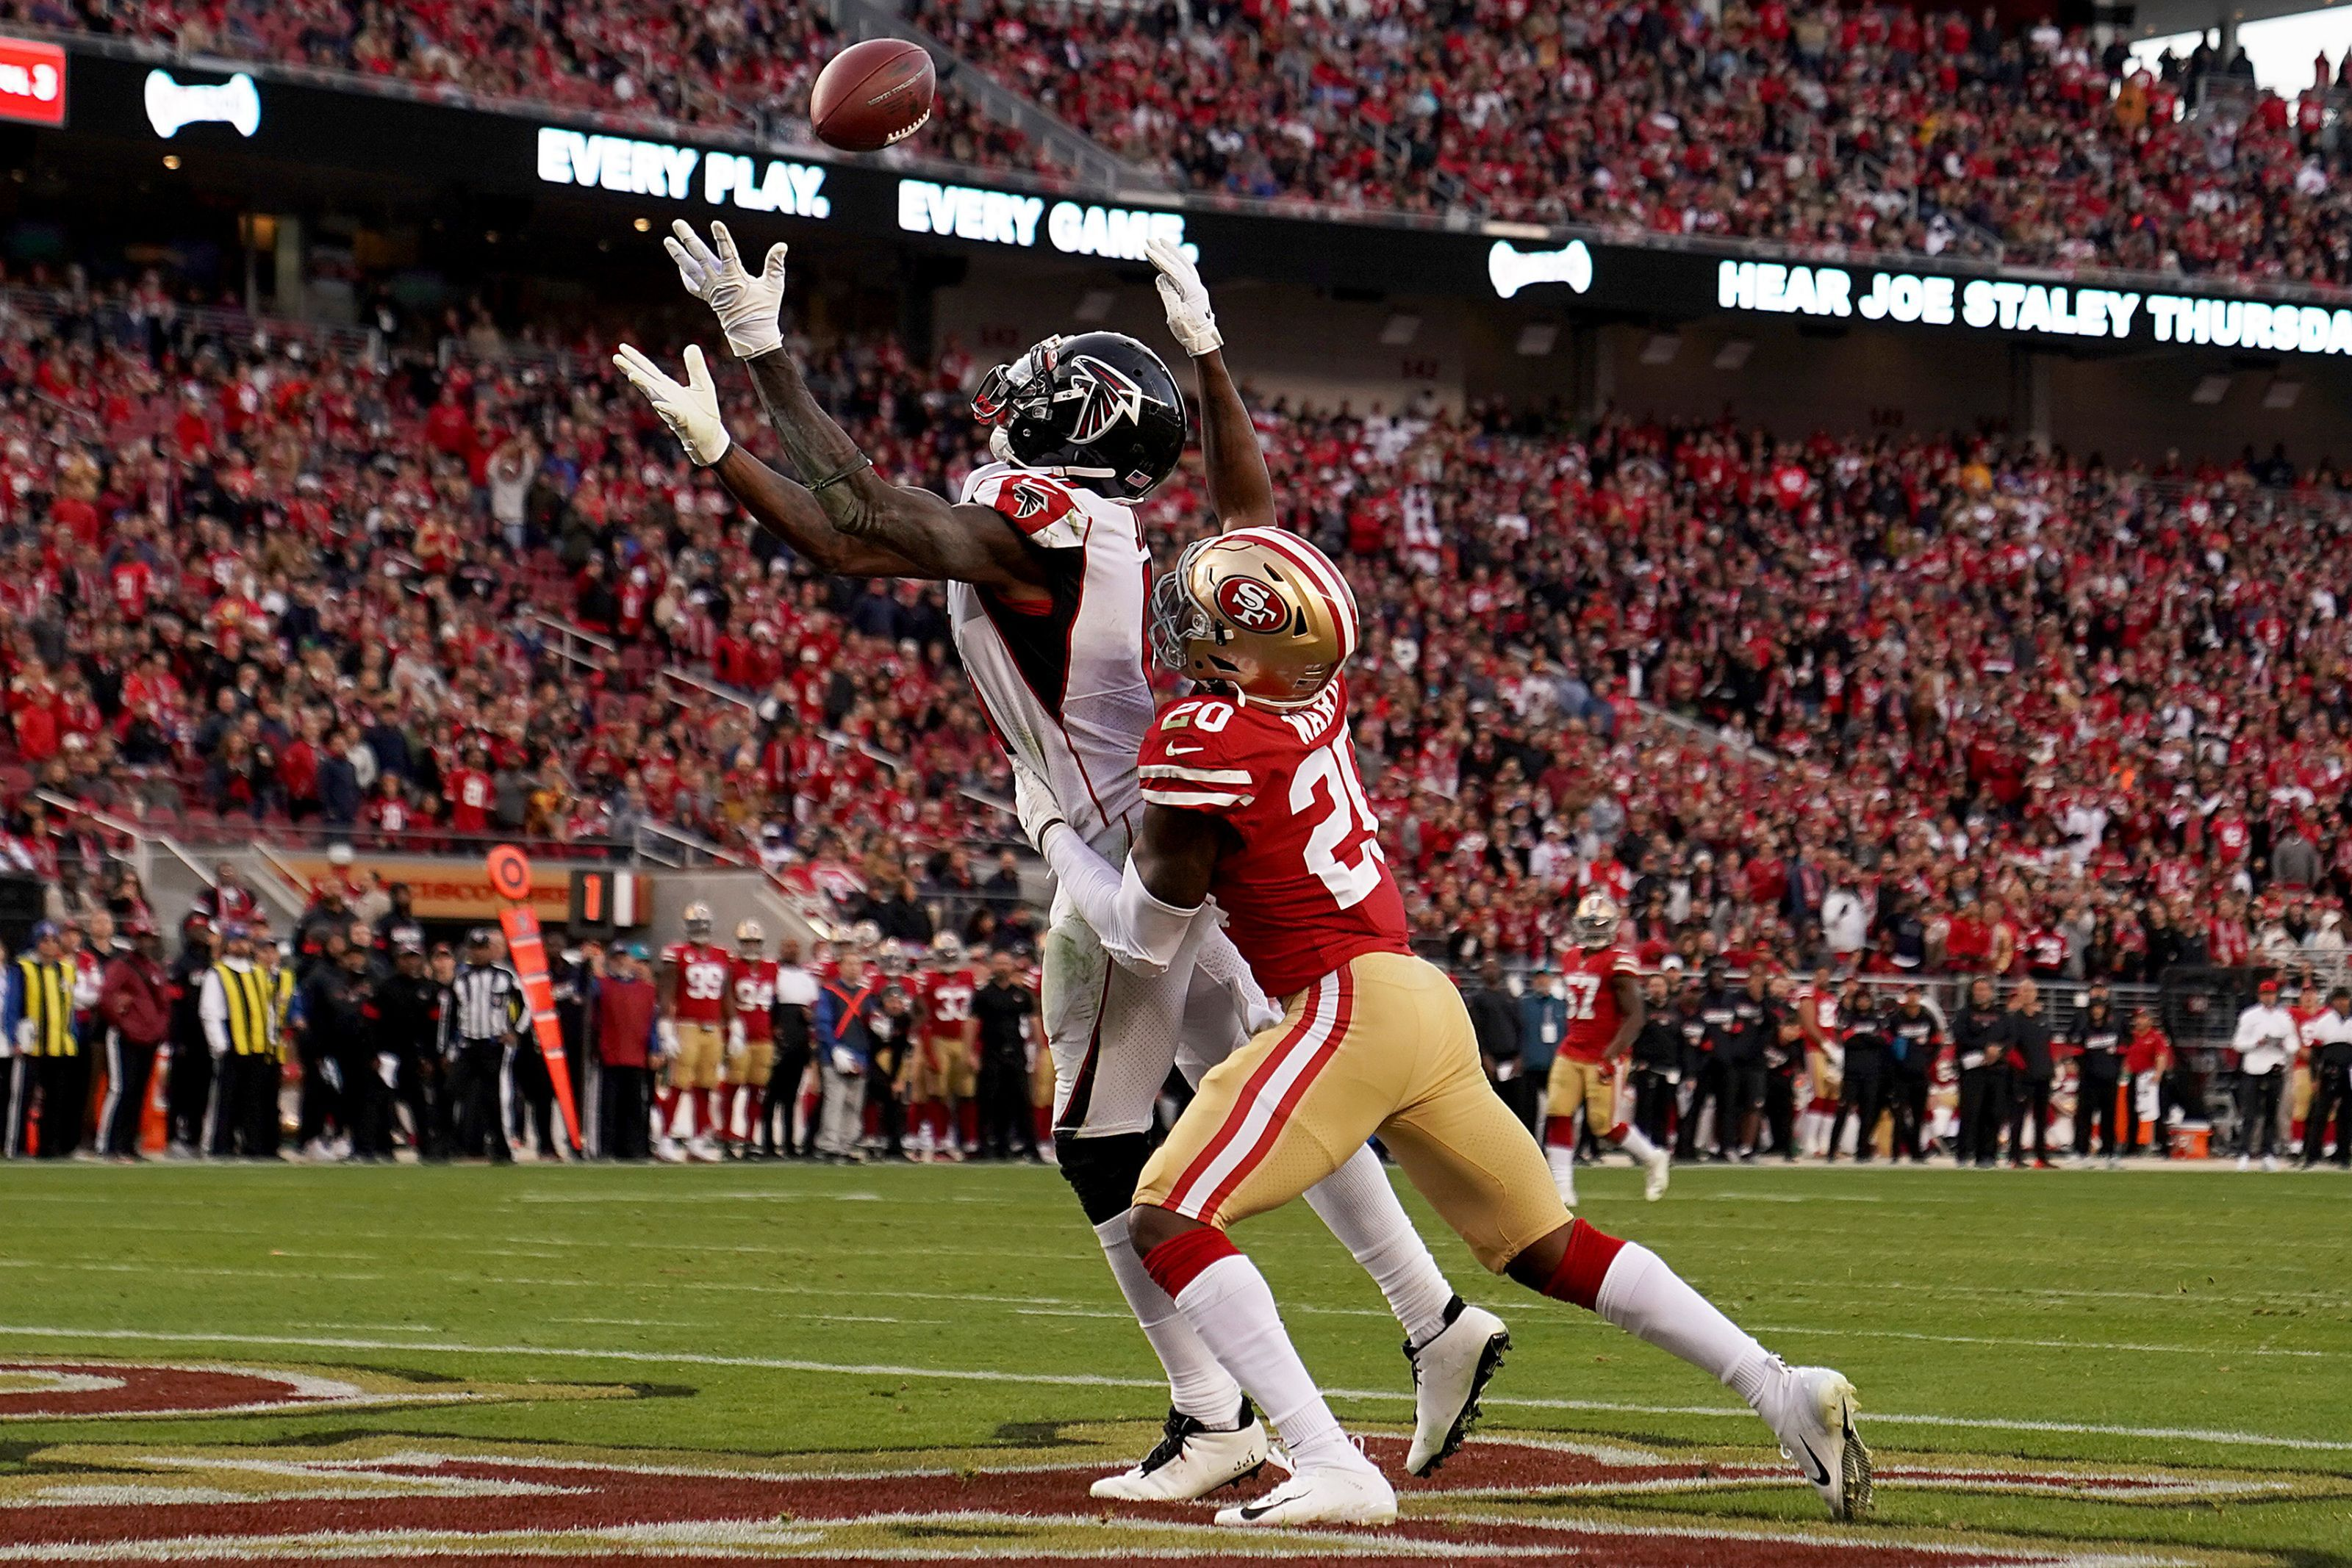 49ers Fall Into Trap Game In Week 15 Lose To Falcons At Last Second National Football League News The 49er Nfl News Football League National Football League